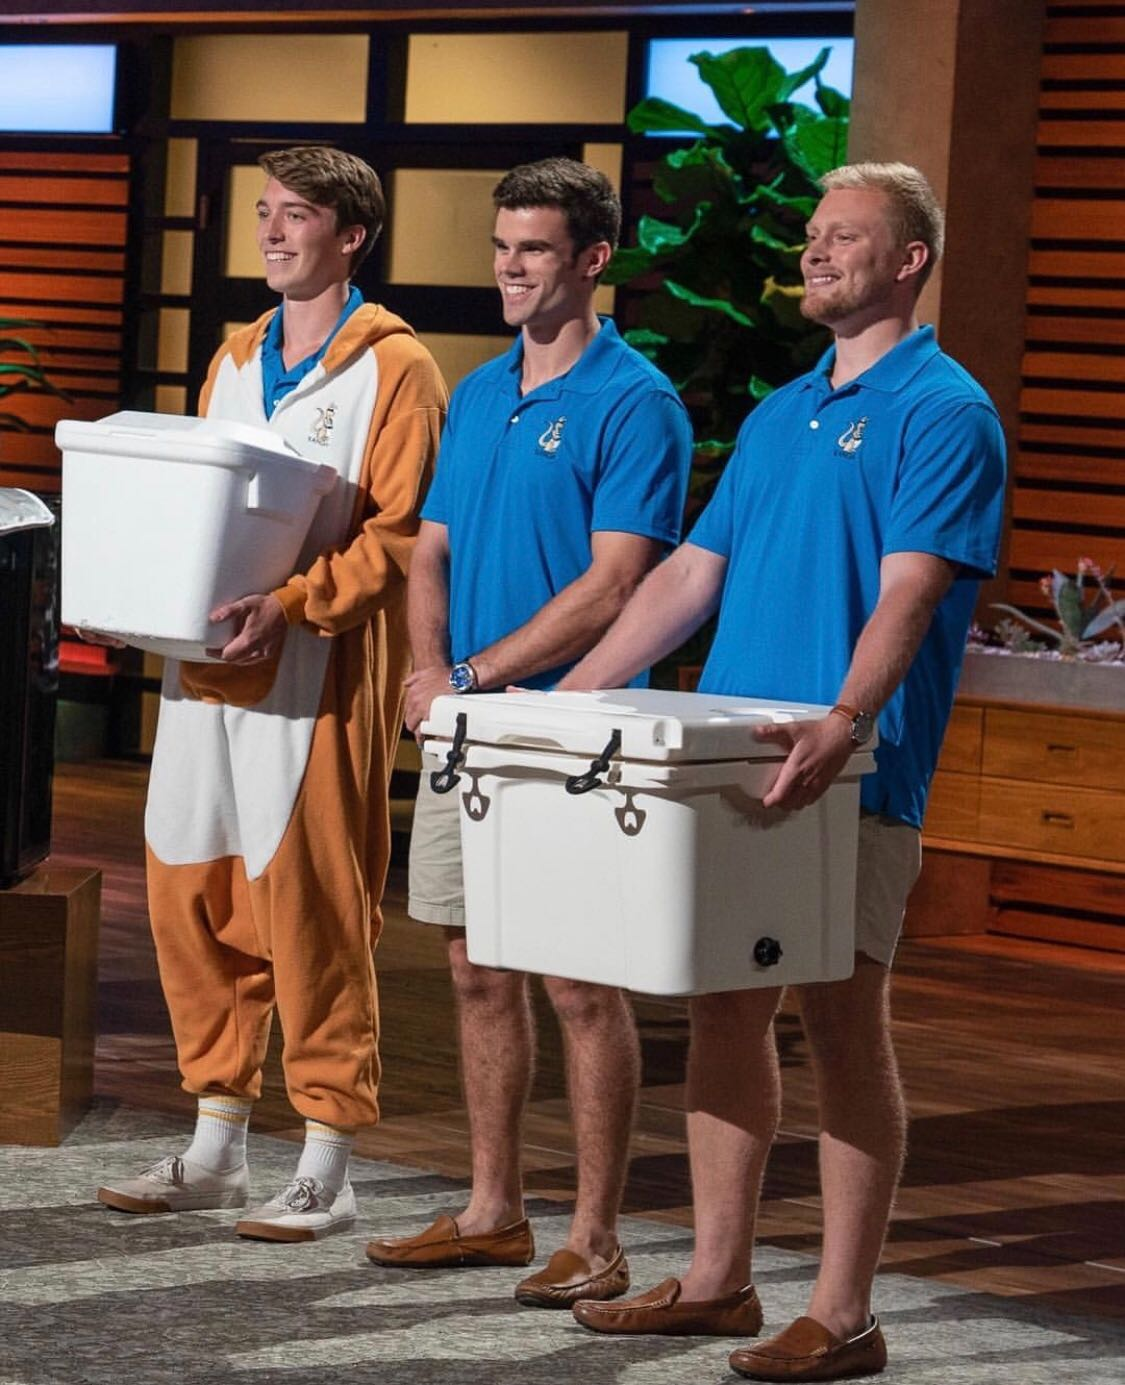 Photo (left to right): Teddy Giard, Logan LaMance, and Austin Maxwell pitching their company, Kanga Coolers, on Shark Tank.